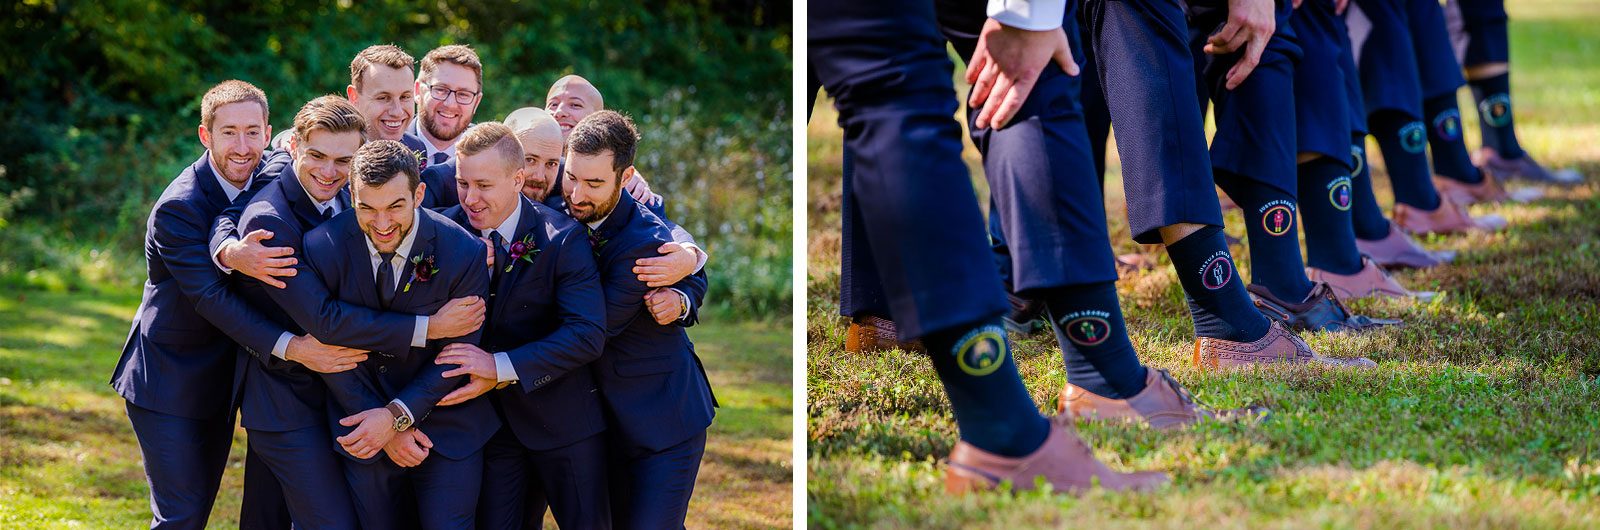 Eric_and_Christy_Photography_Blog_Stephanie_Nick_Wedding-28-29